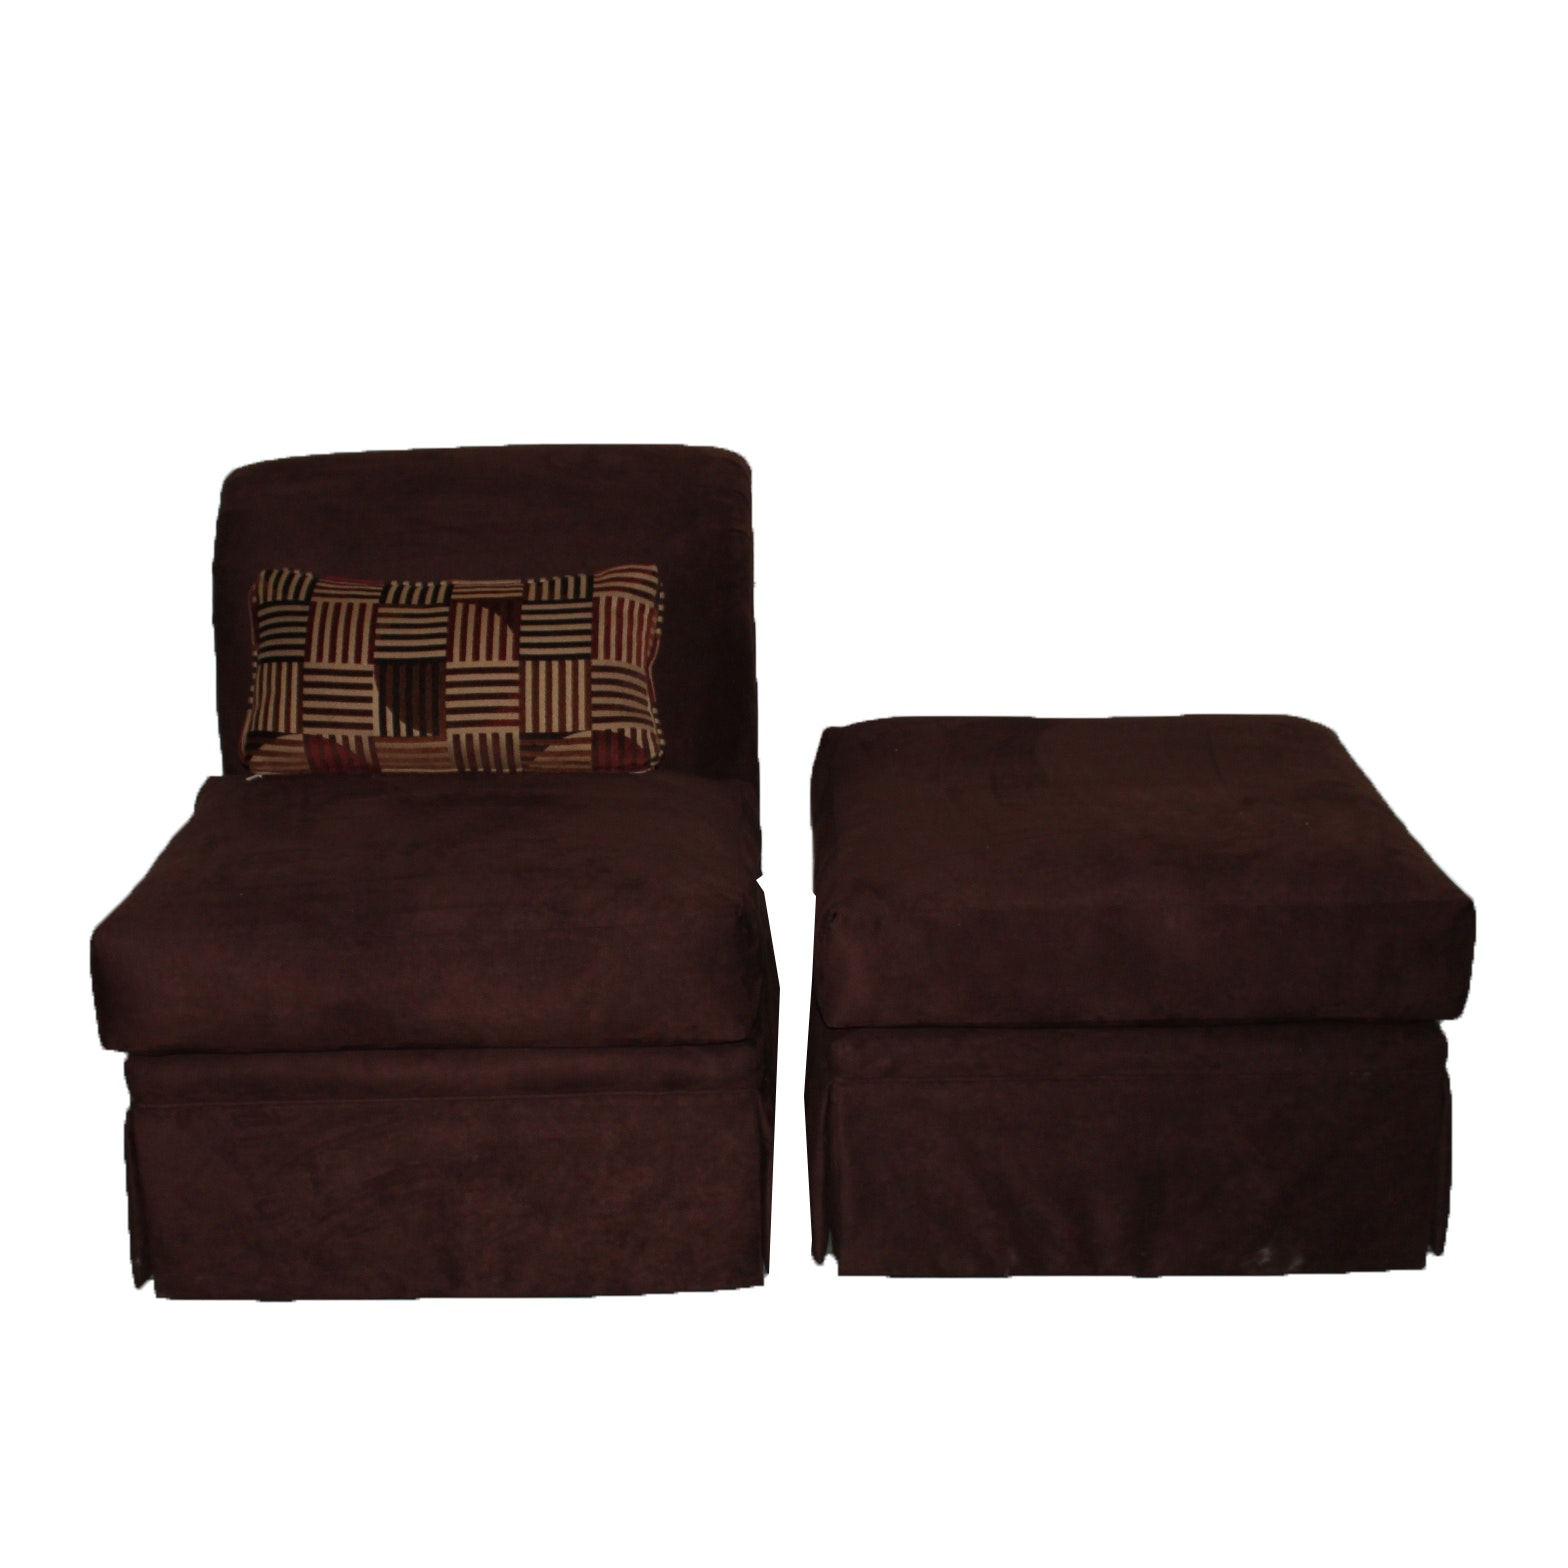 Contemporary Modern Microfiber Chair and Ottoman